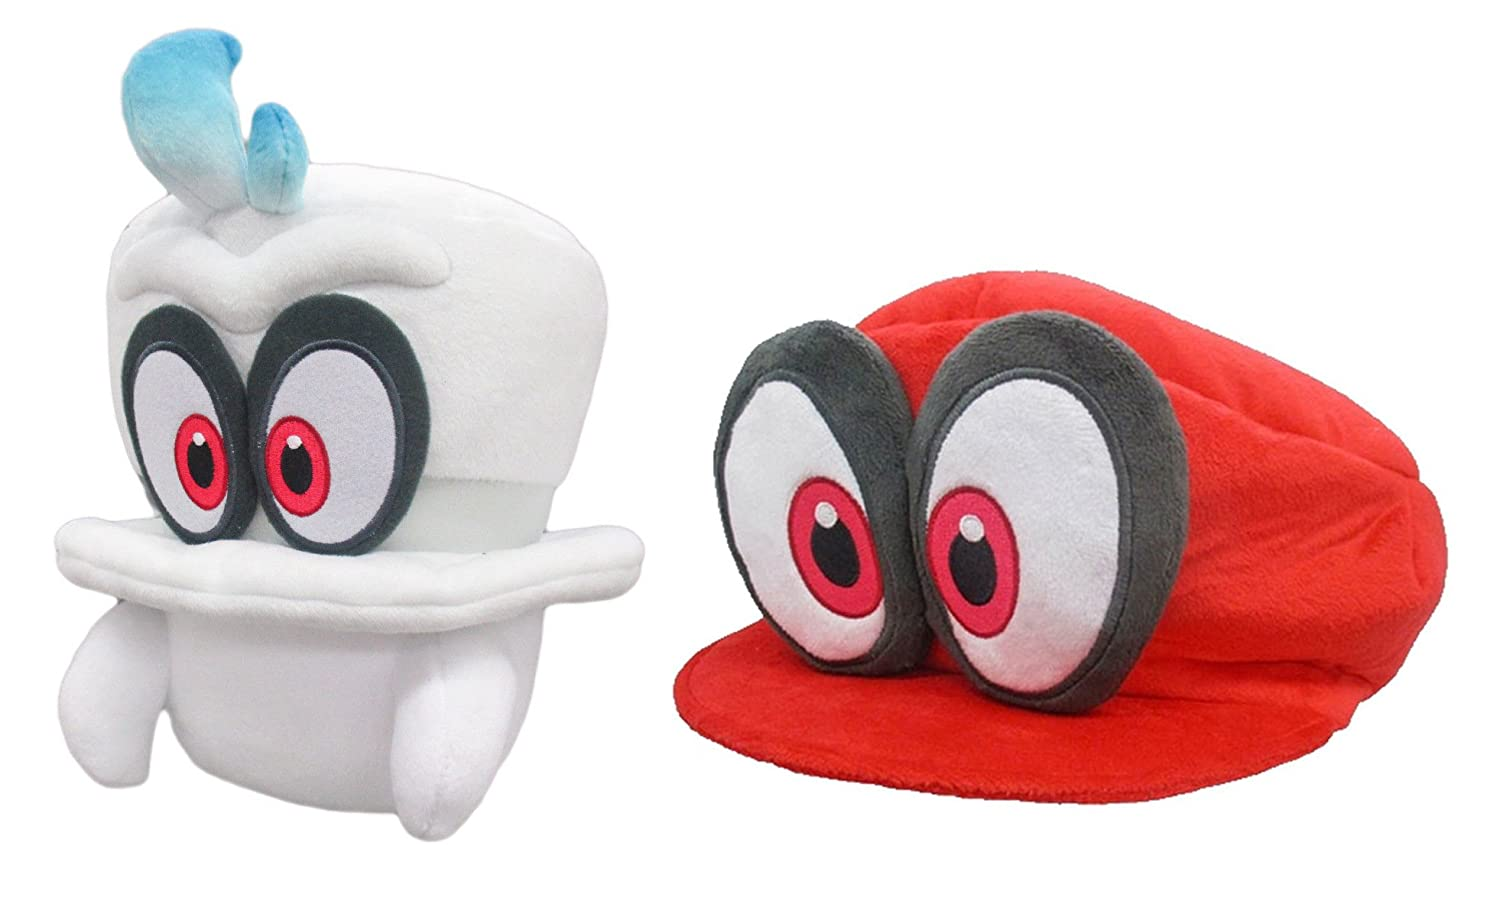 Buy Little Buddy Super Mario Odyssey White Cappy Normal Form Red Cappy Mario S Cap Plush Set Of 2 Online At Low Prices In India Amazon In